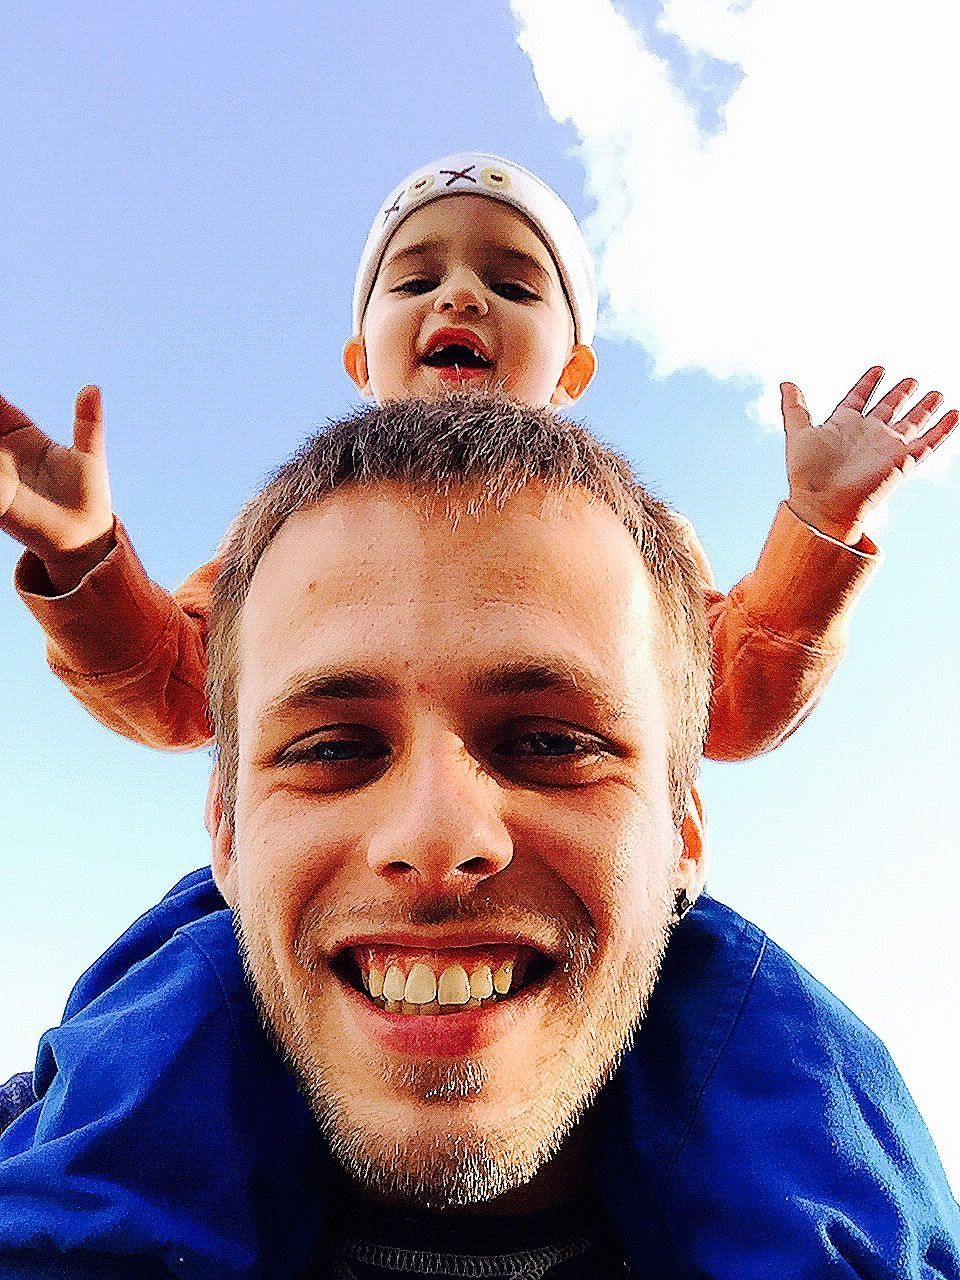 childhood, smiling, portrait, looking at camera, happiness, front view, real people, sky, day, leisure activity, boys, low angle view, headshot, fun, elementary age, one person, gesturing, lifestyles, cheerful, outdoors, making a face, blue, close-up, clear sky, blond hair, young adult, people